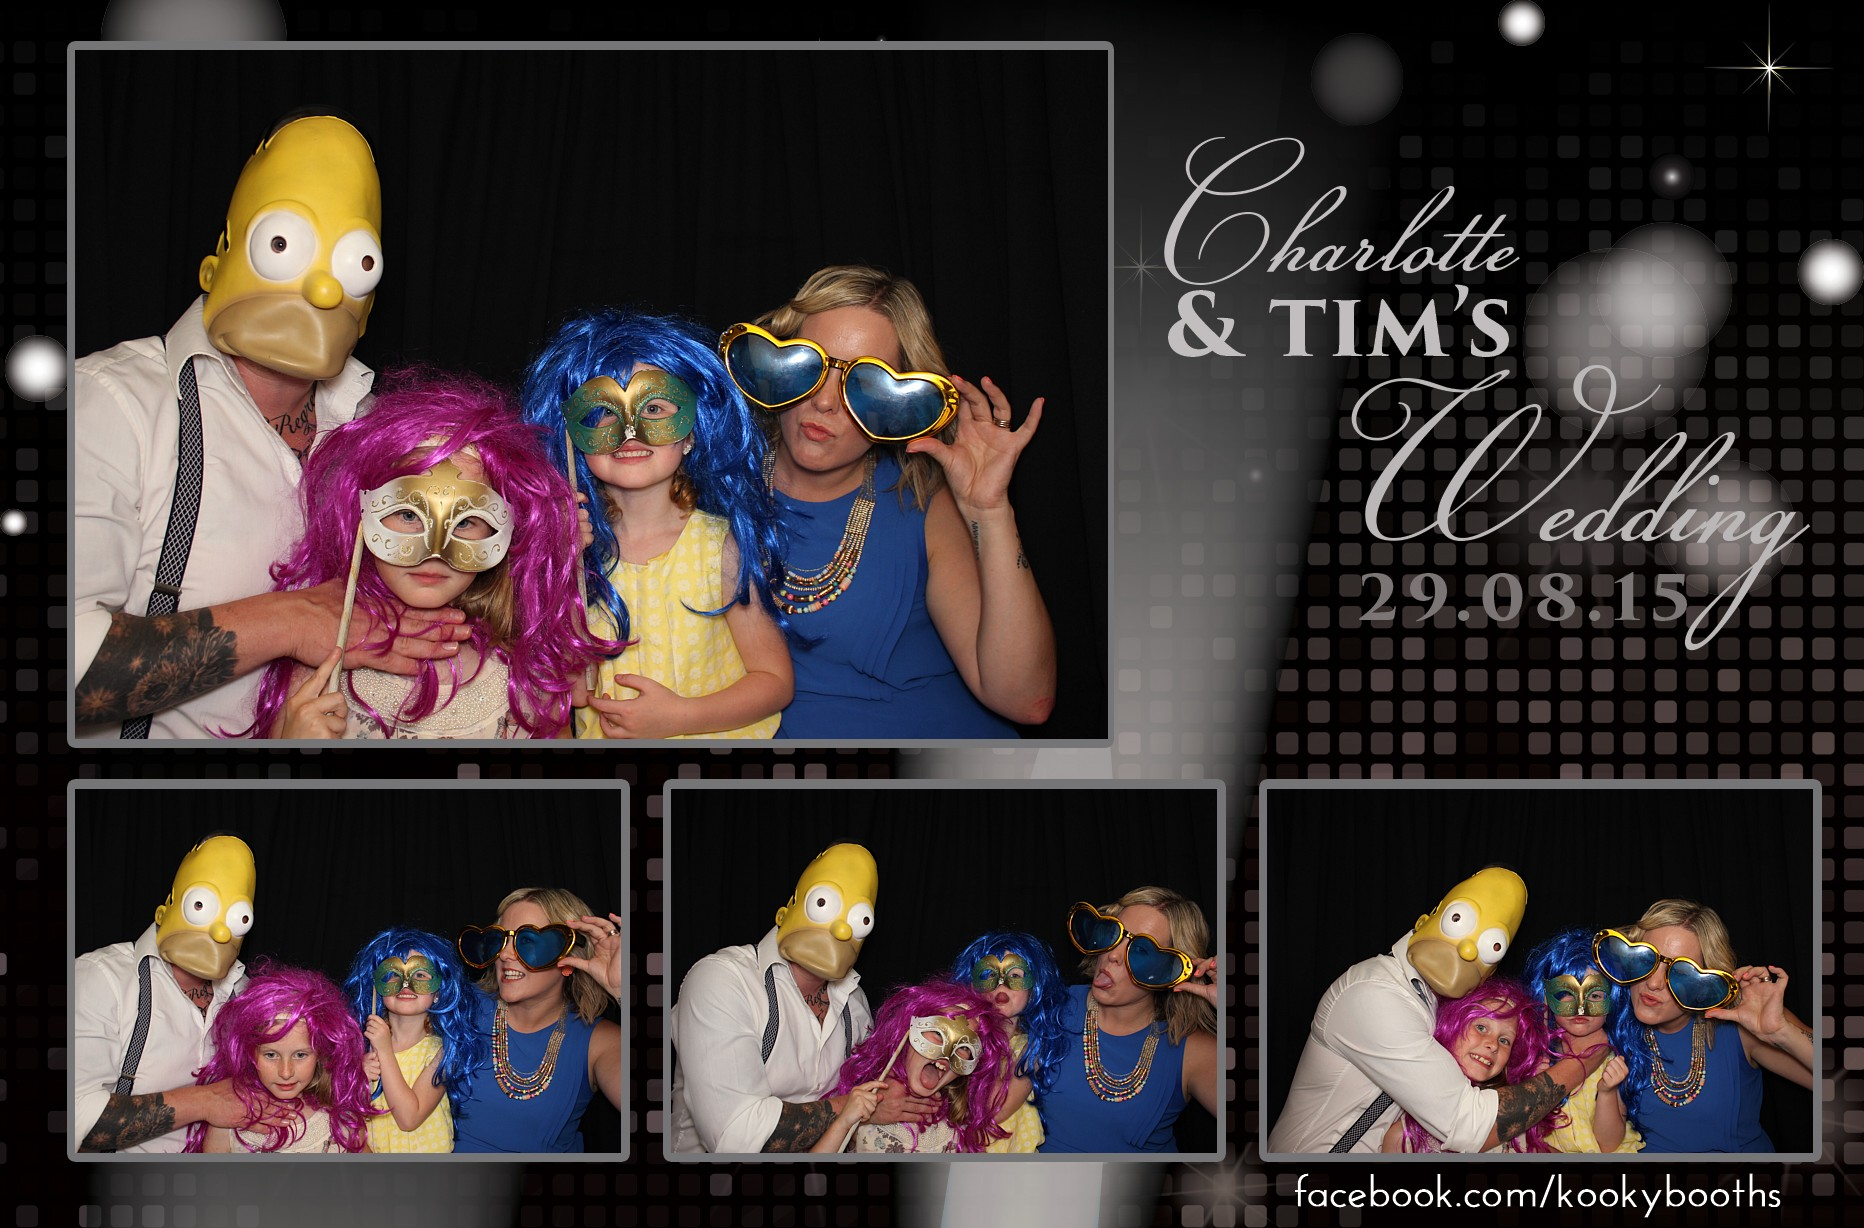 photo booth torquay devon